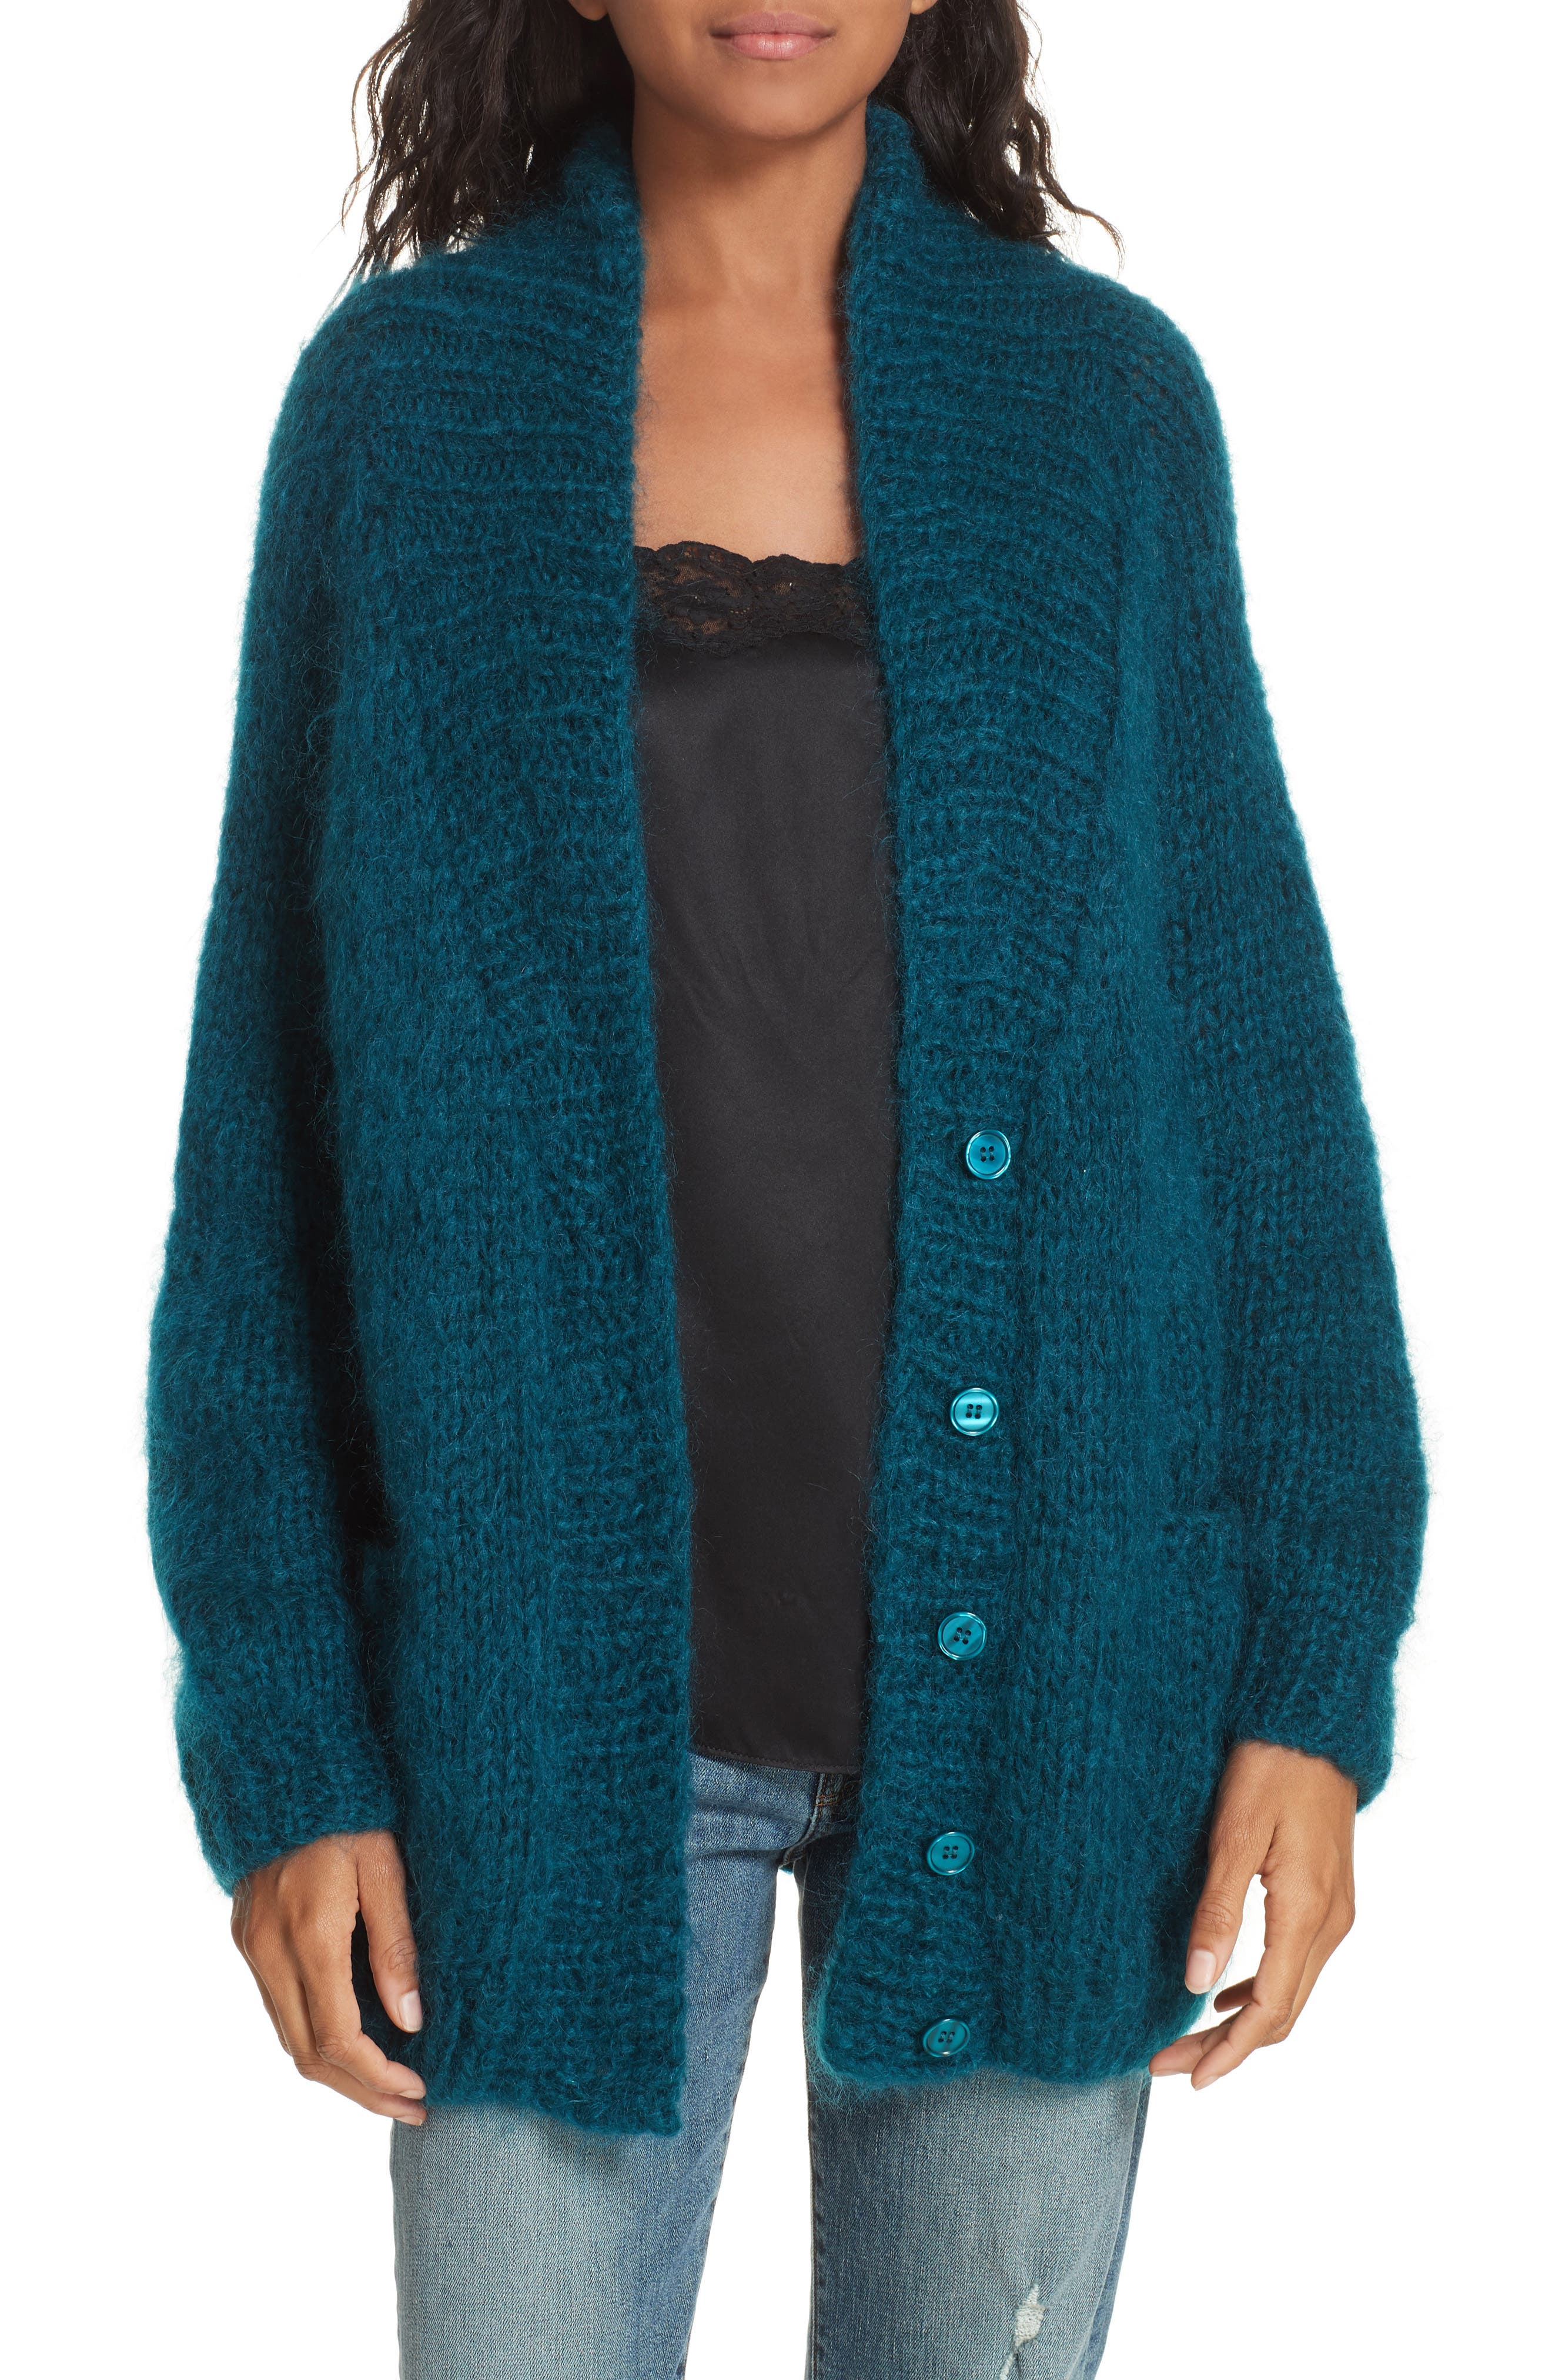 Knitted Cardigan,                         Main,                         color, 440